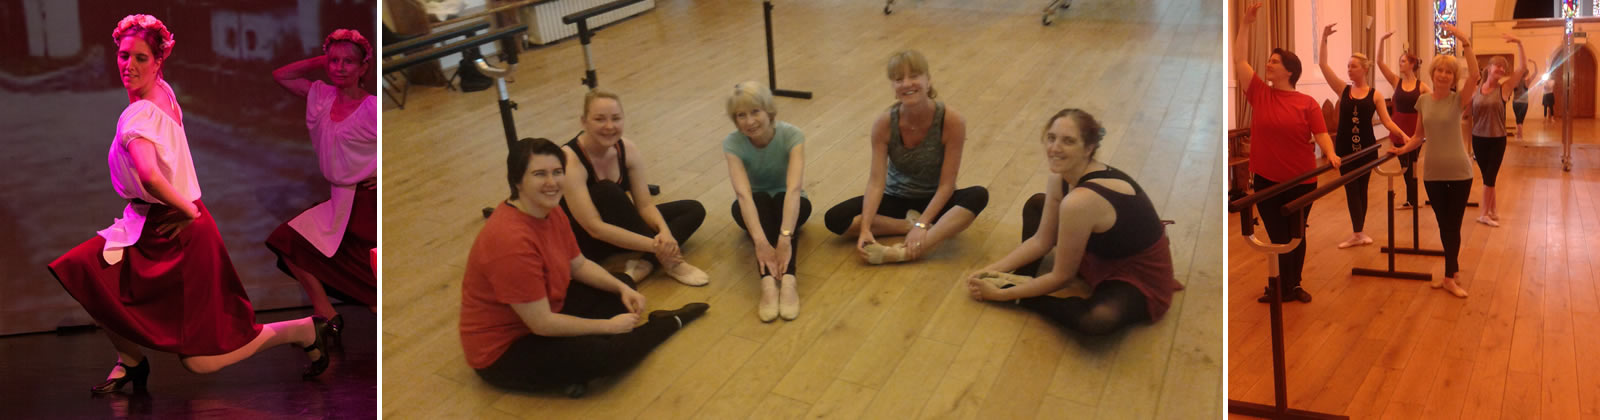 Adult Ballet and Dance Classes in Old Harlow, Essex